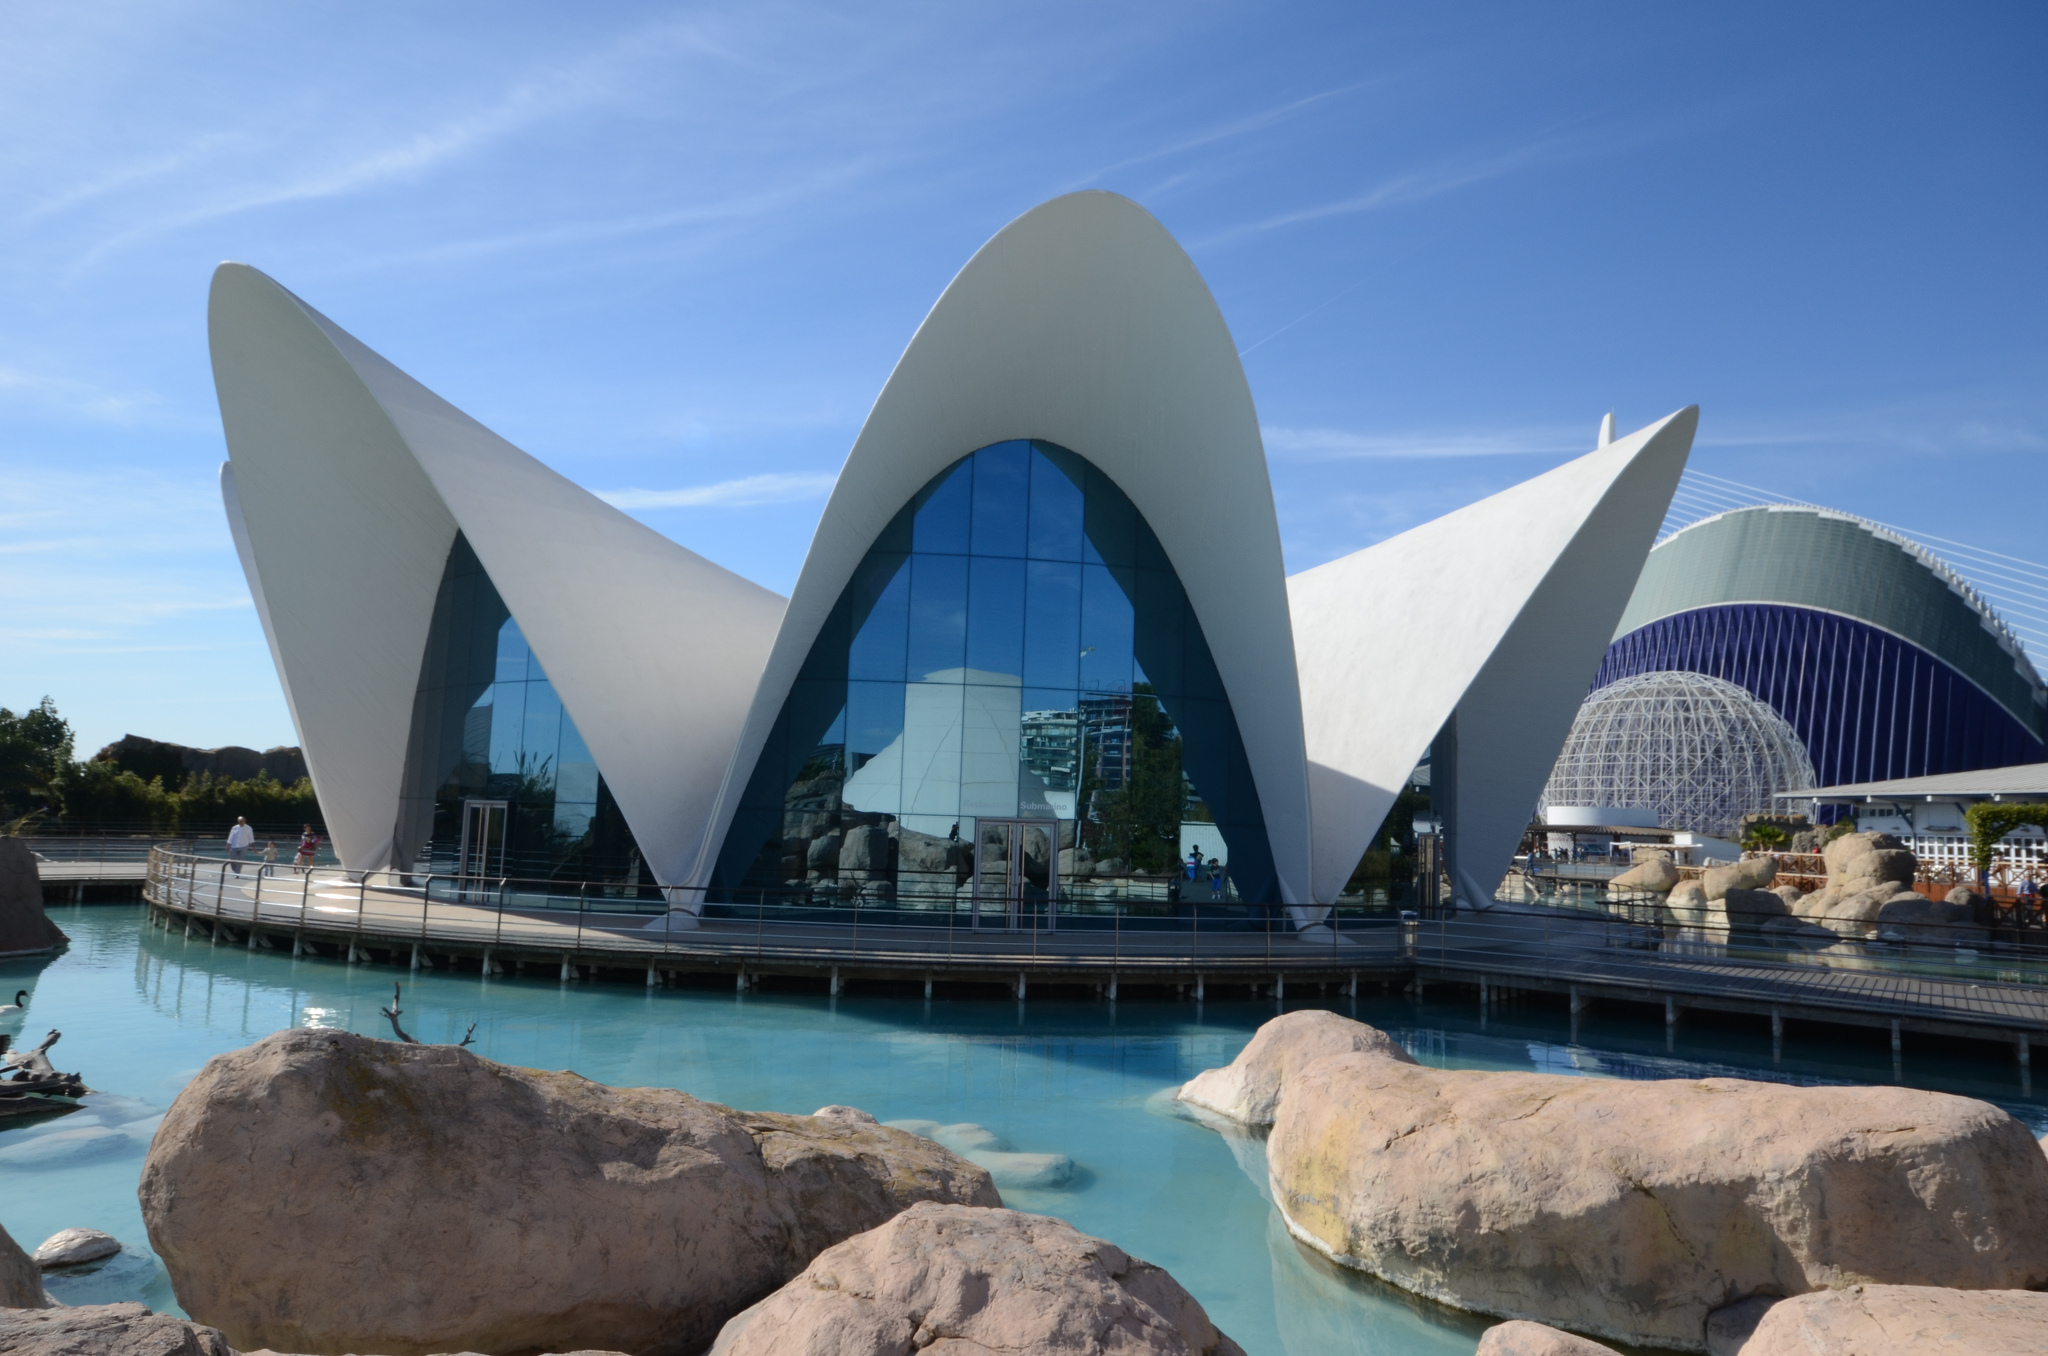 A Brief Introduction To The City Of Arts And Sciences